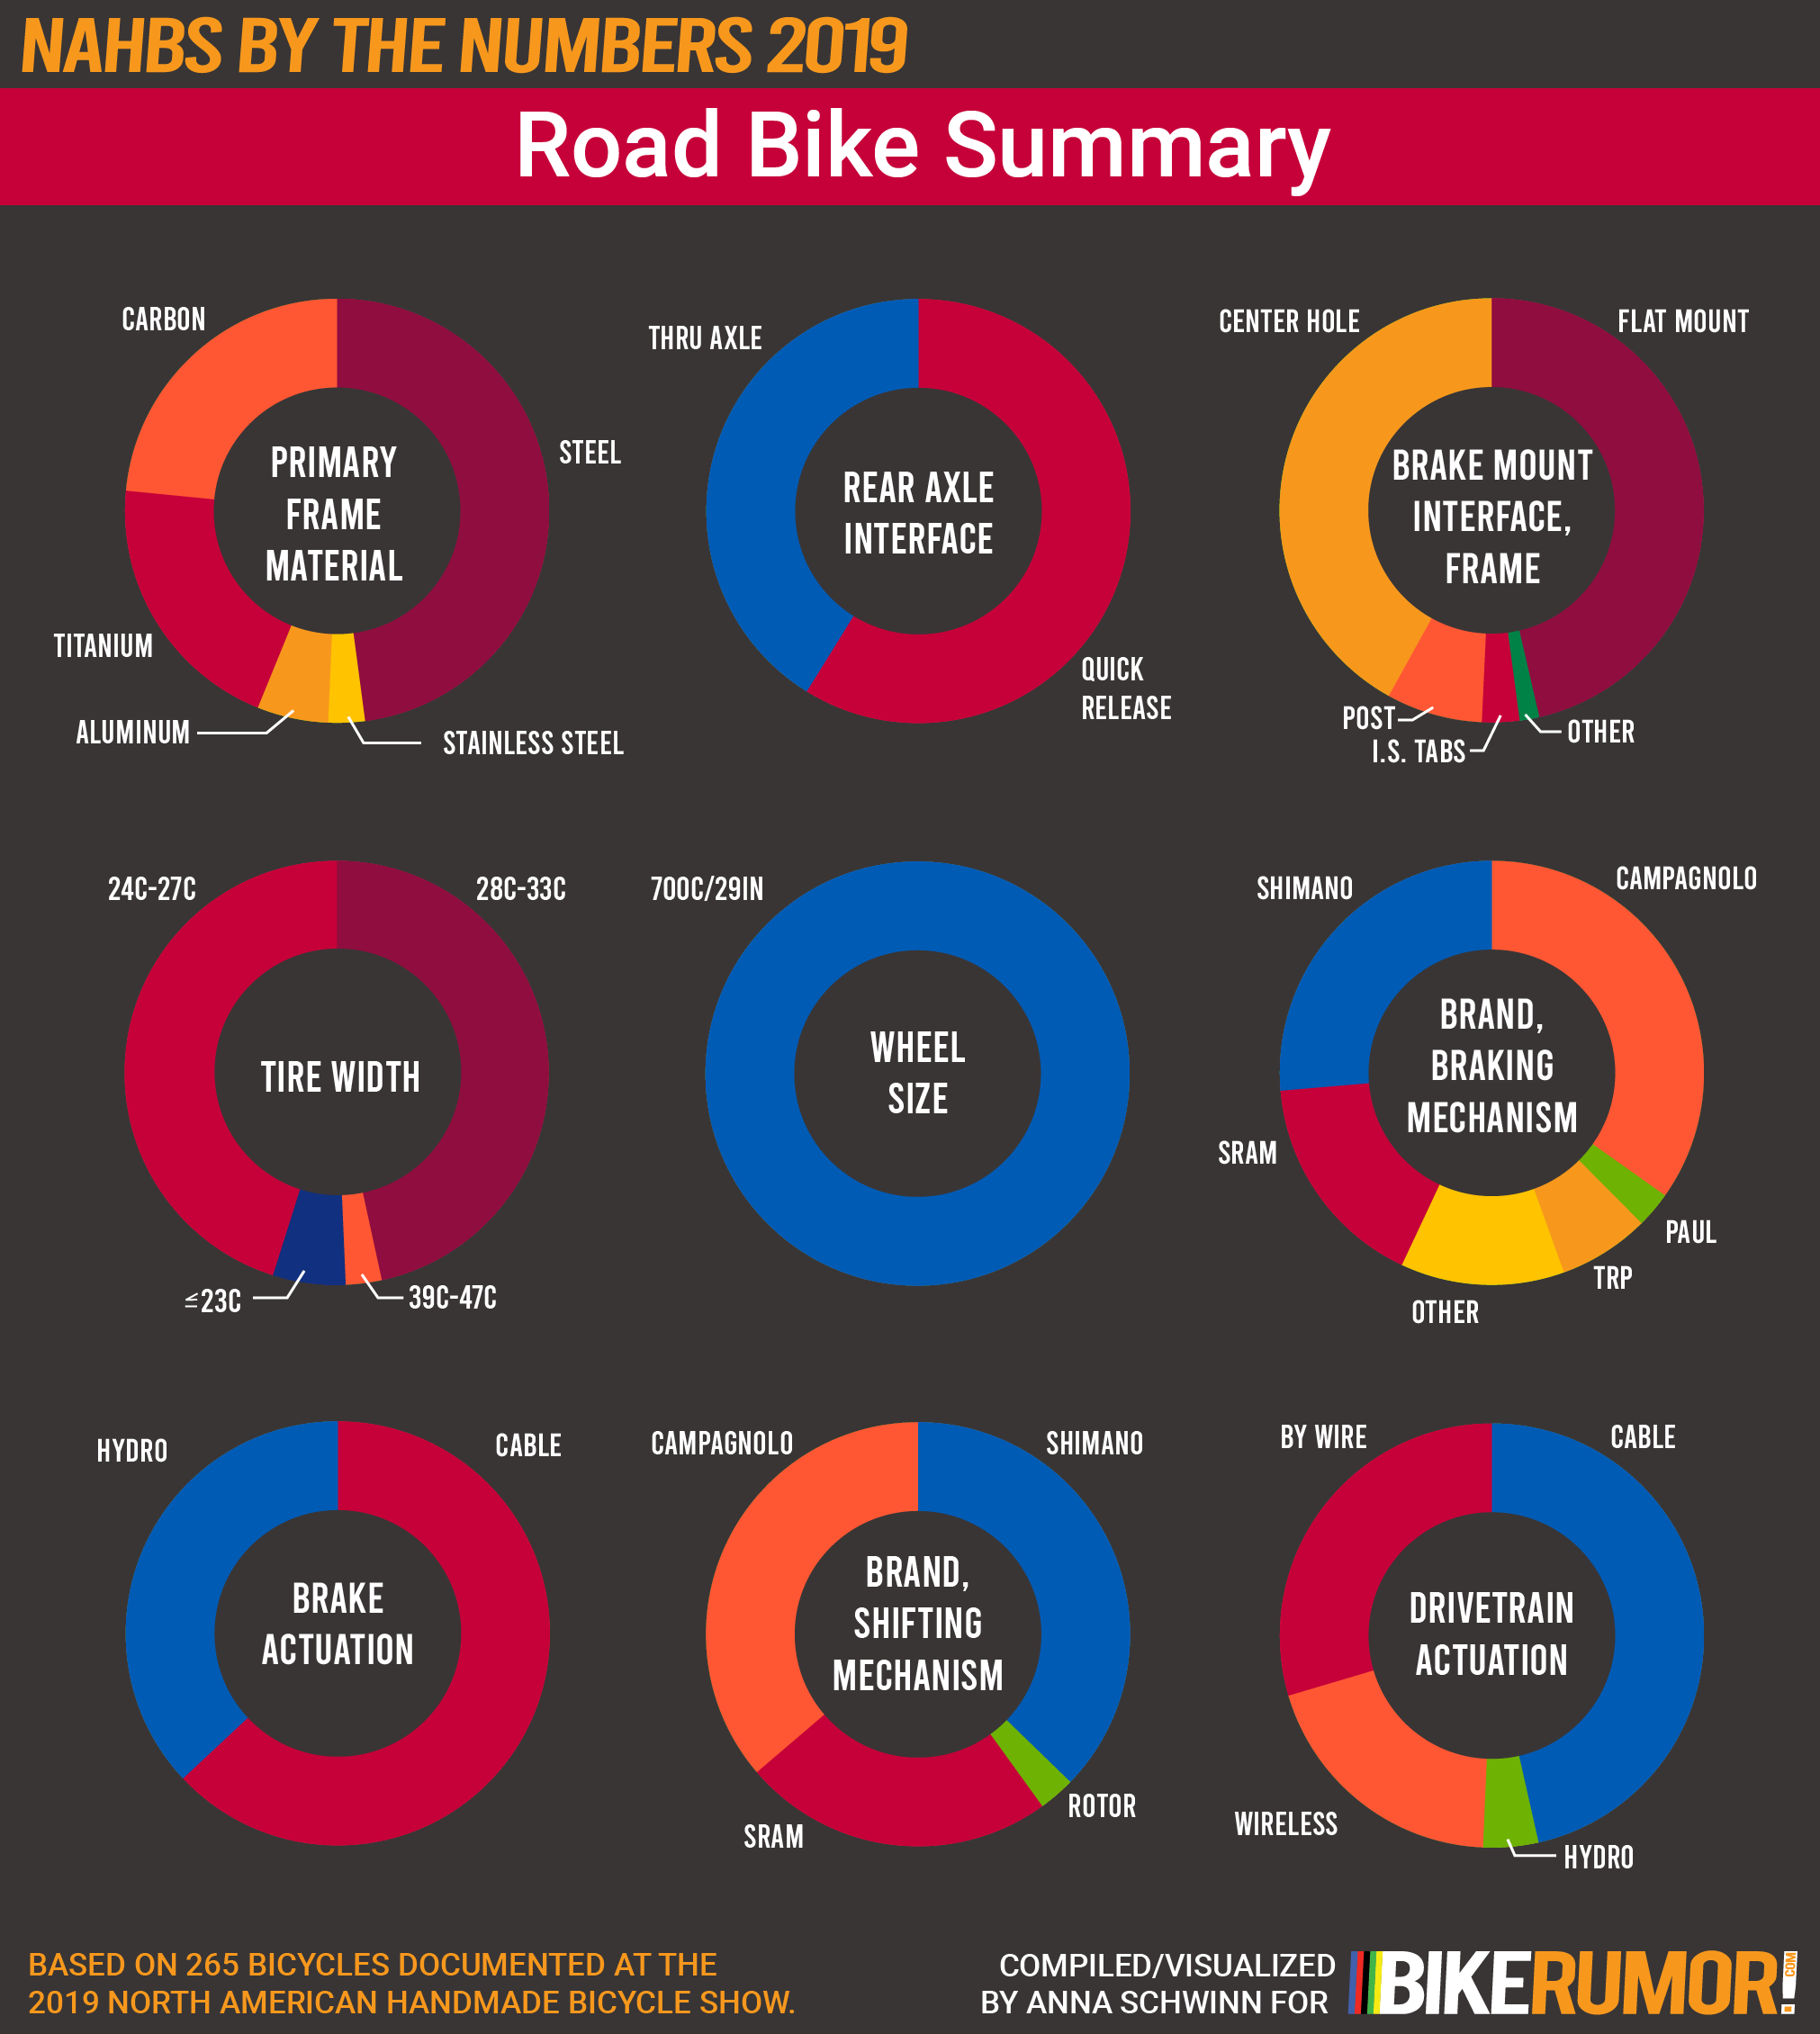 NAHBS by the Numbers 2019, Analysis by Discipline Category, Road Bike Summary